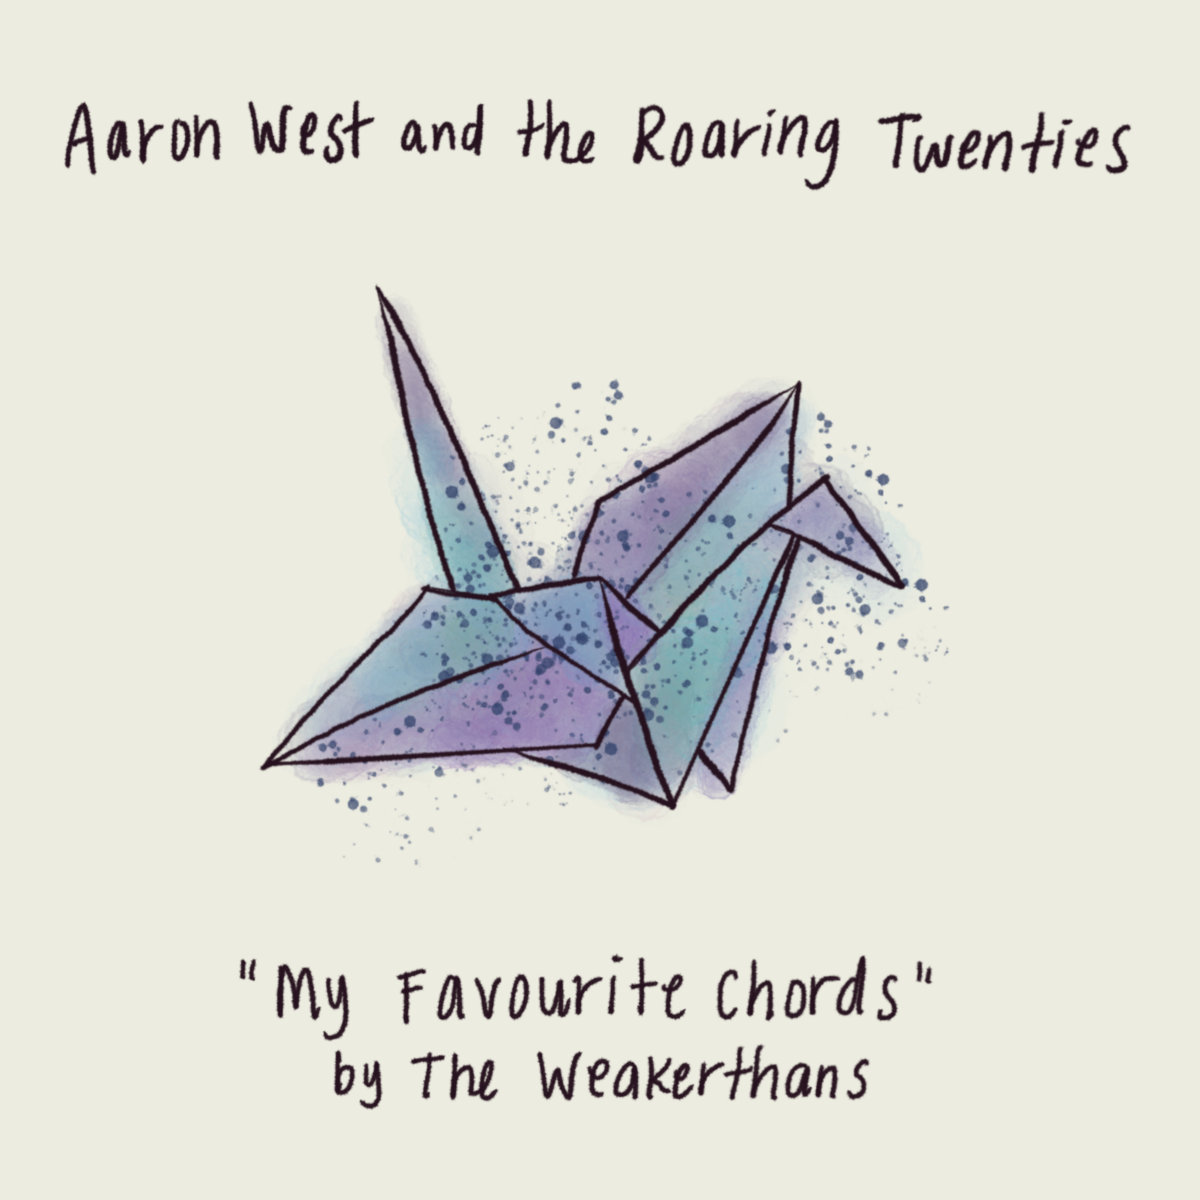 My Favourite Chords The Weakerthans Cover Aaron West And The